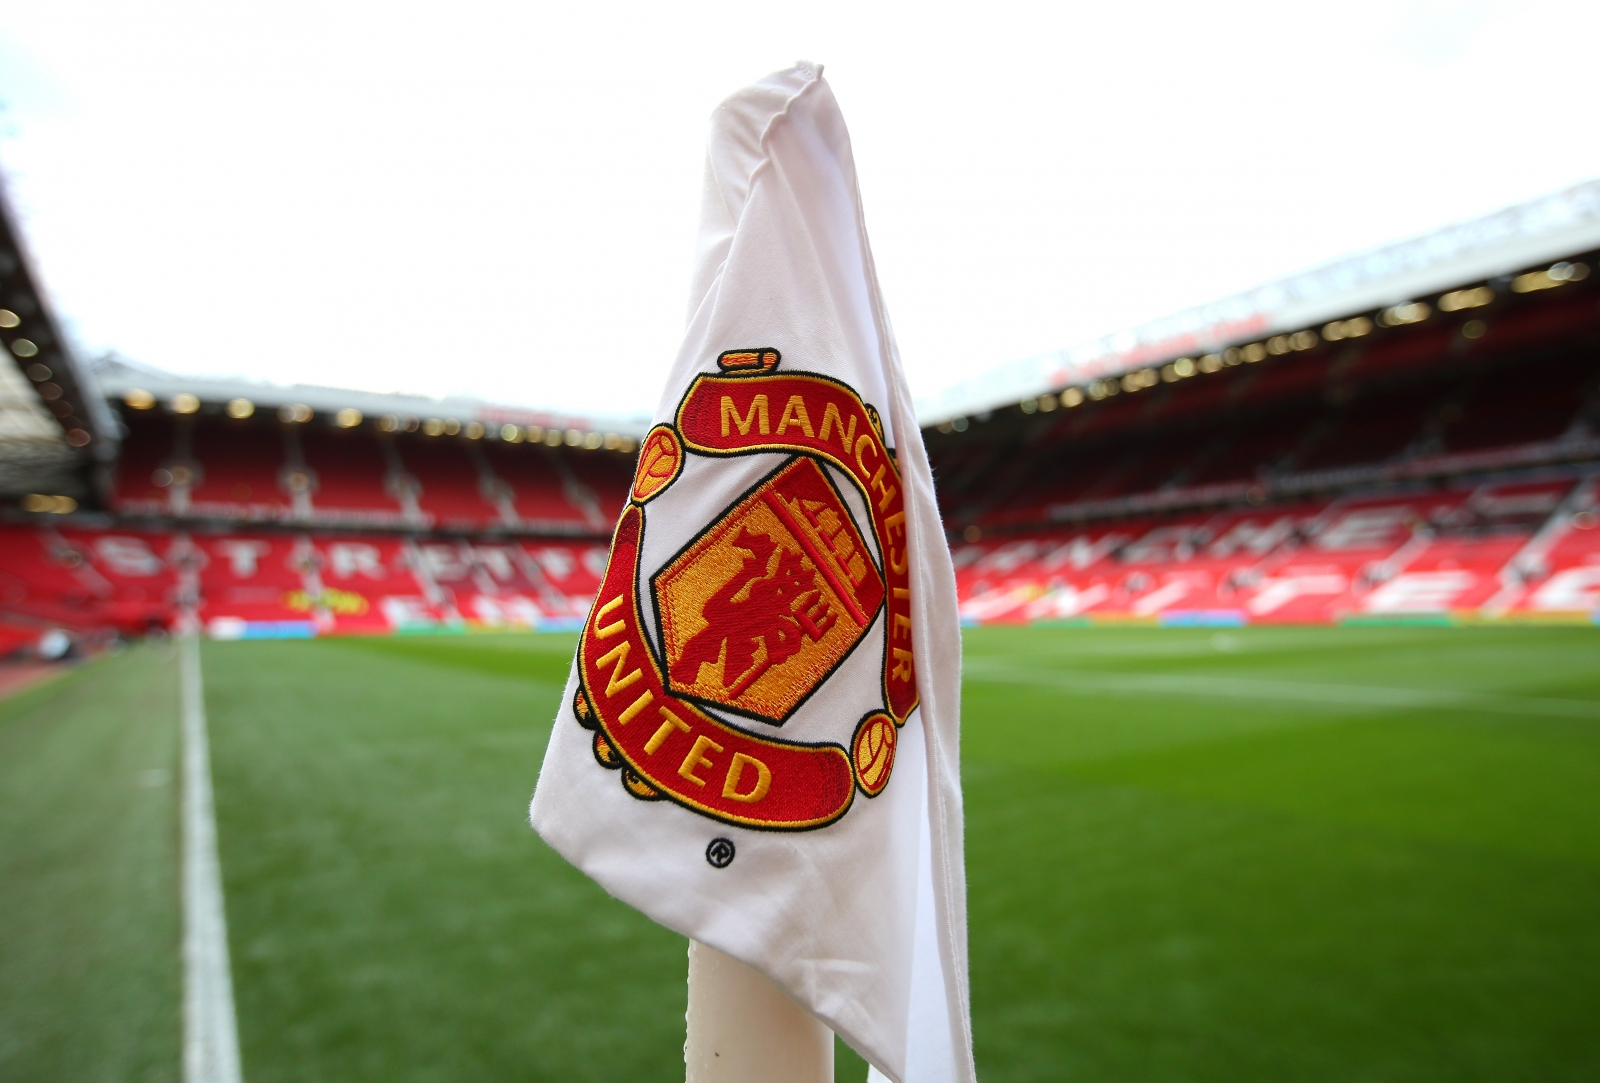 Old Trafford Will Undergo Renovations To Better Accommodate Disabled Fans